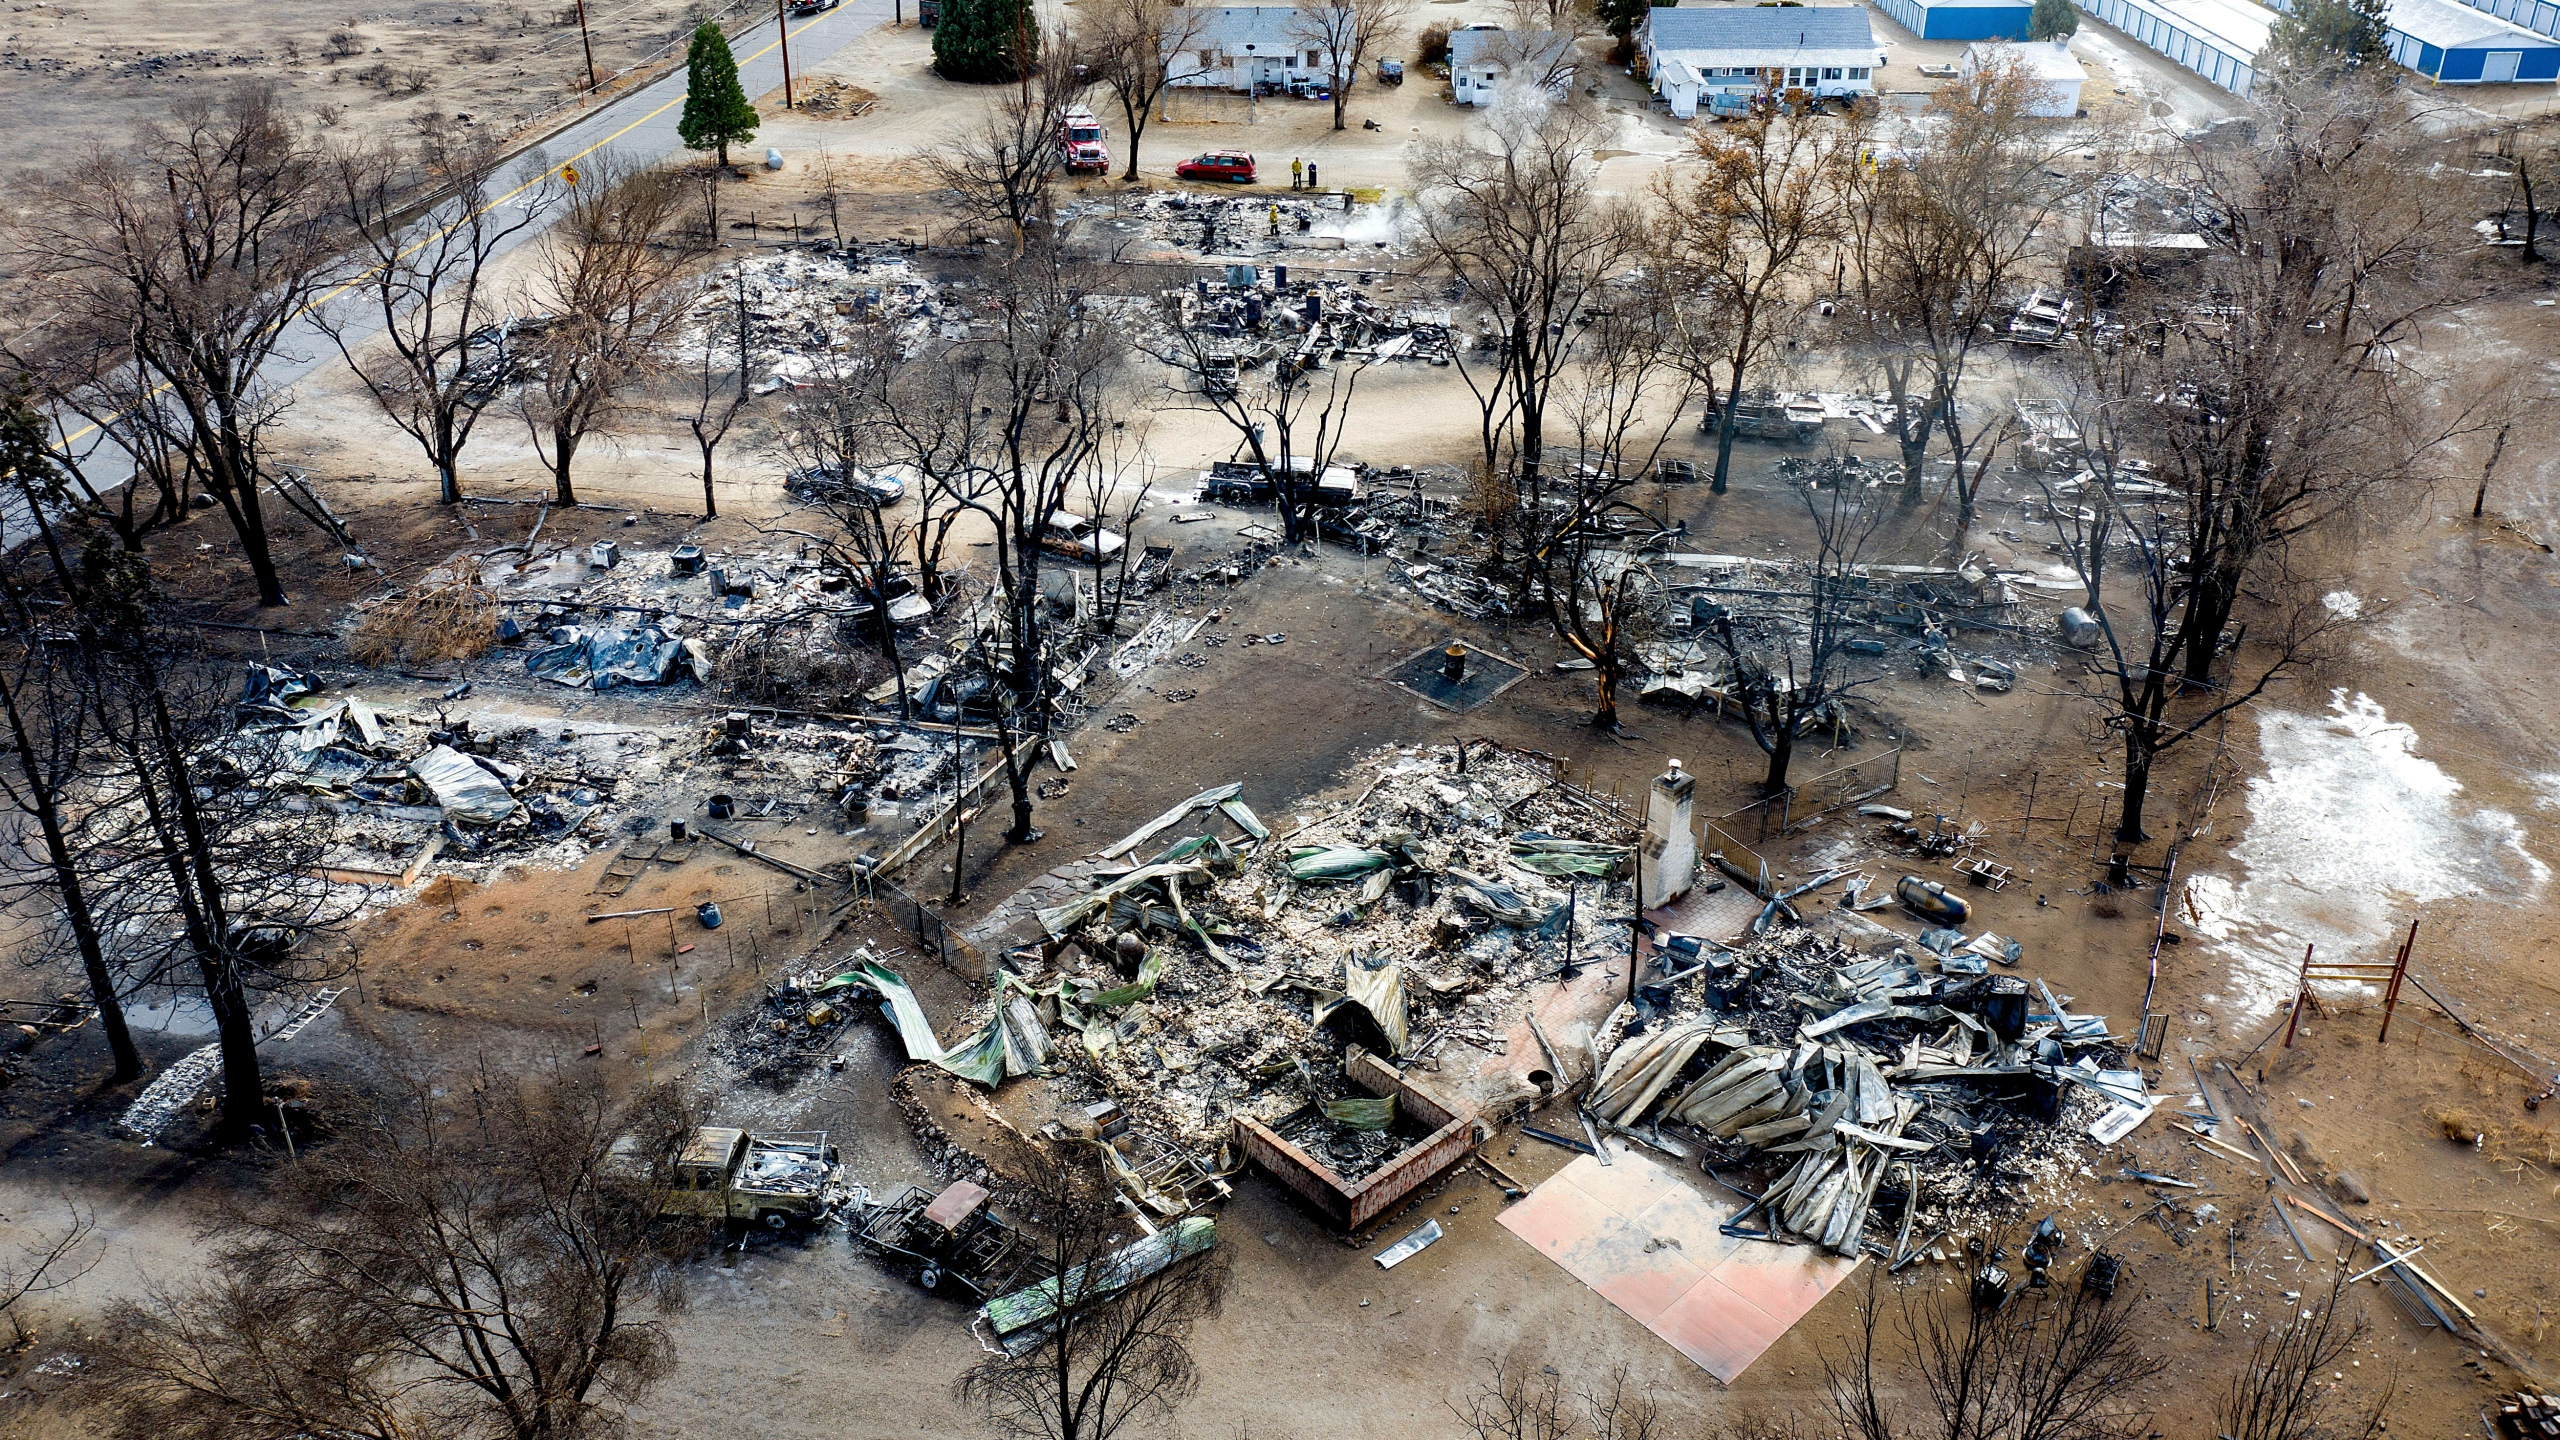 In this Nov. 18, 2020 file photo taken by a drone, residences destroyed by the Mountain View Fire line a street in the Walker community in Mono County, Calif. (AP Photo/Noah Berger)